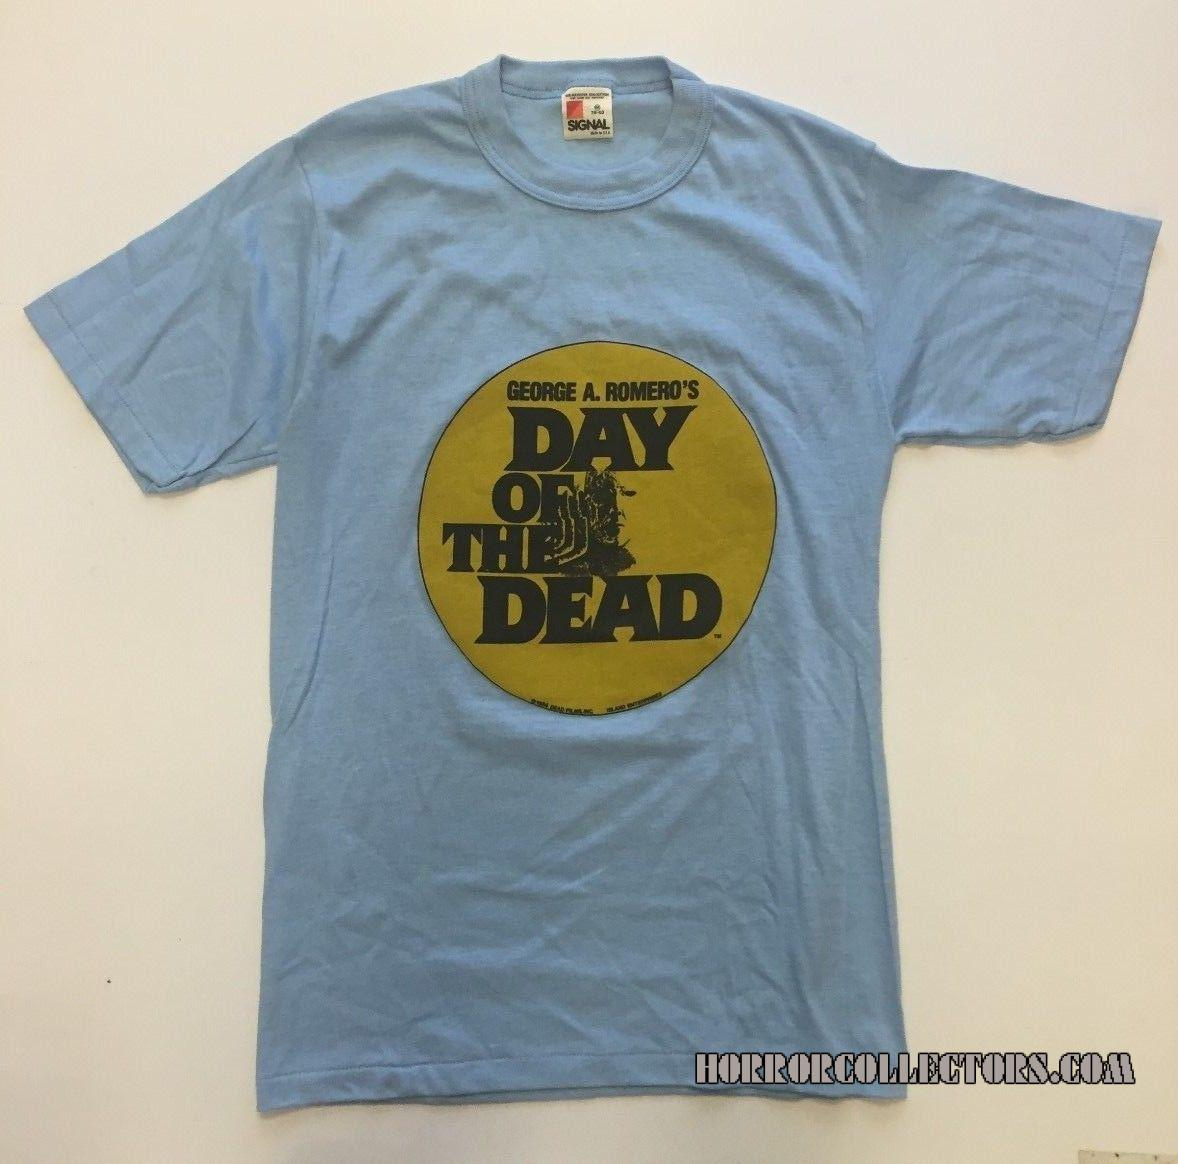 Vintage 1985 George Romero's Day Of The Dead Movie T-Shirt